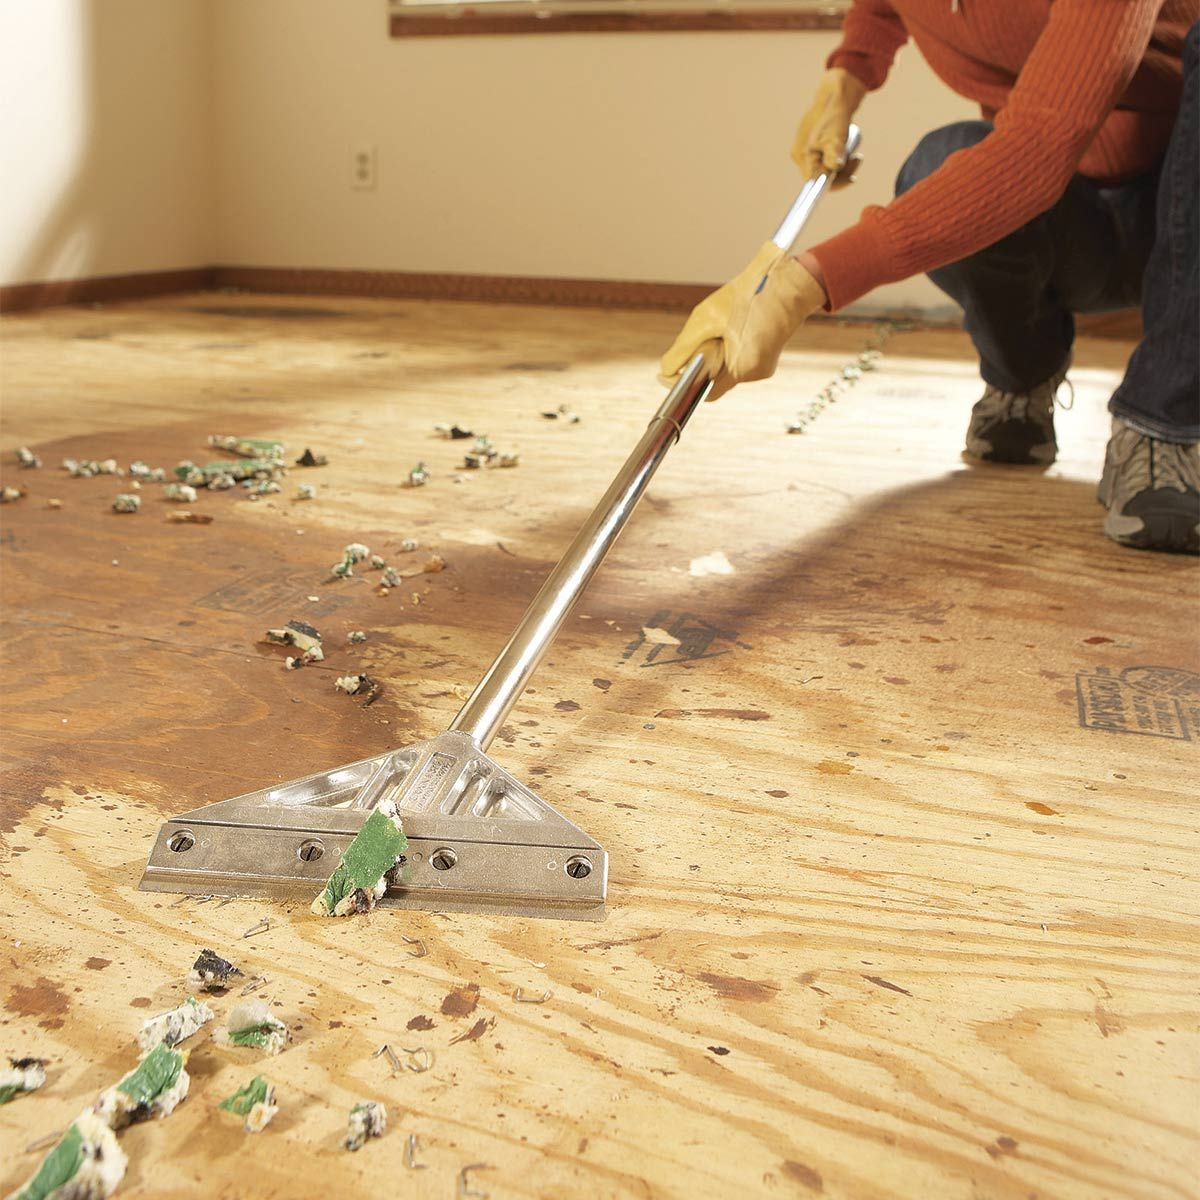 51 Diy Demolition Tips You Need To Know In 2020 Removing Carpet Home Fix Floor Scrapers